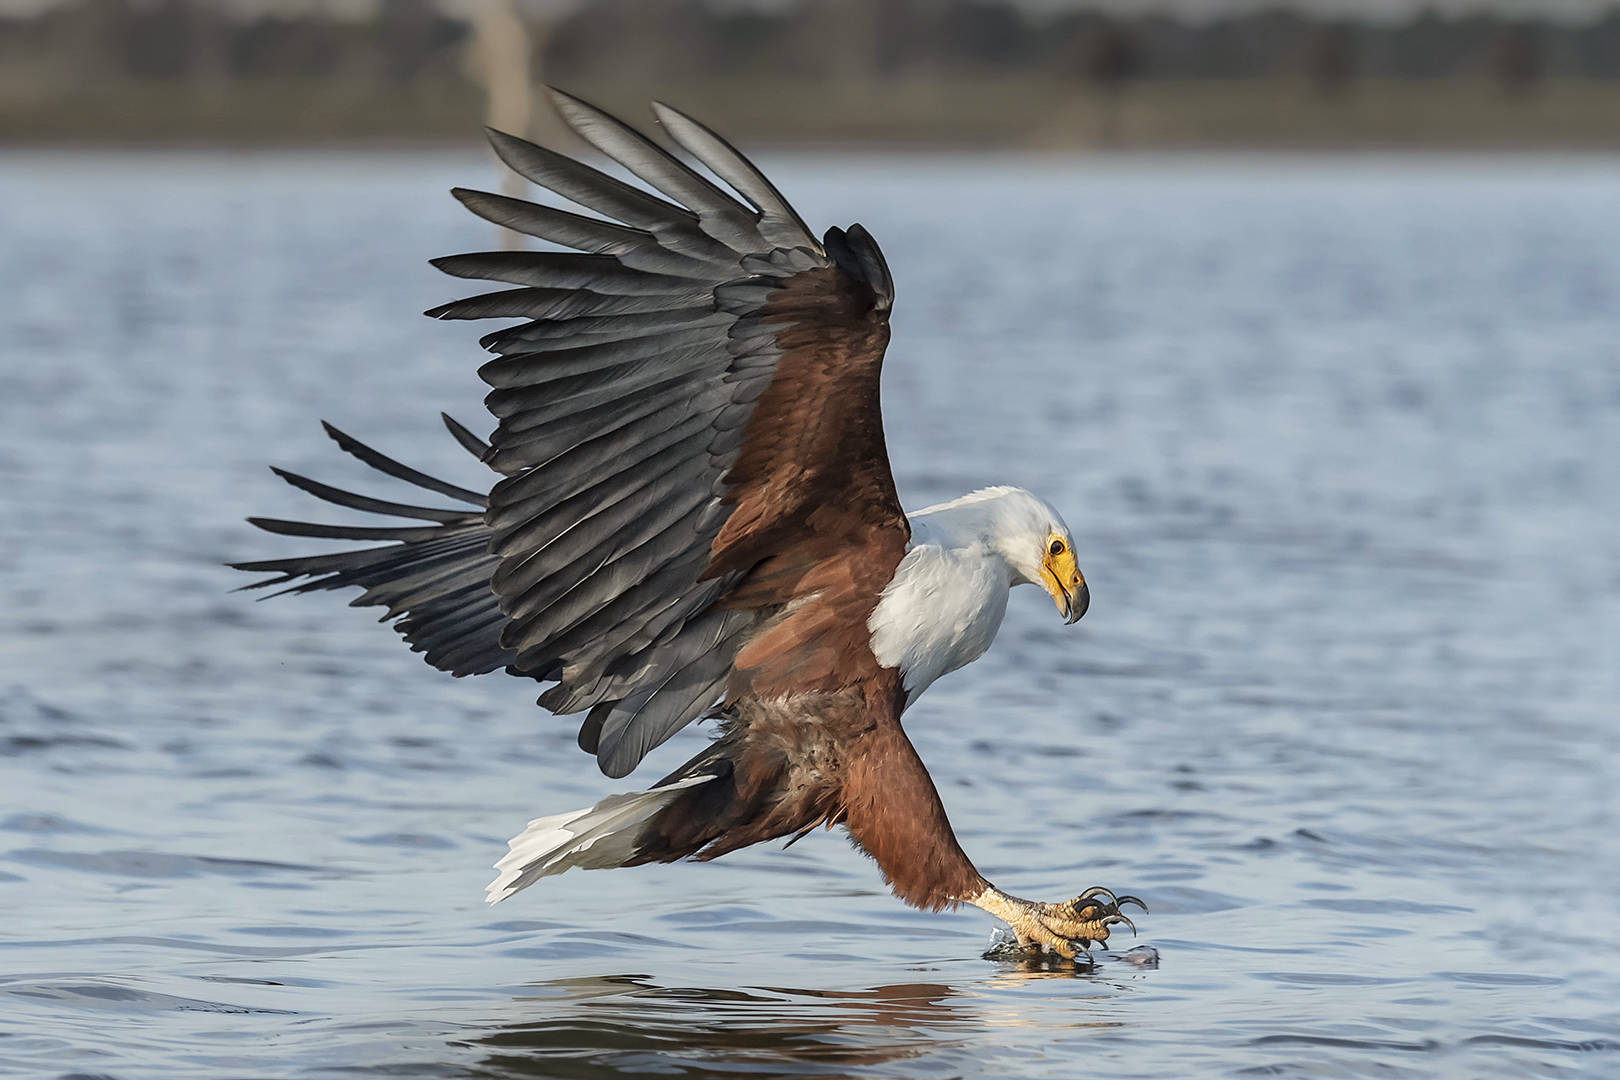 Sandy (Yan Hua) Lu – African fish eagle hunting – HM